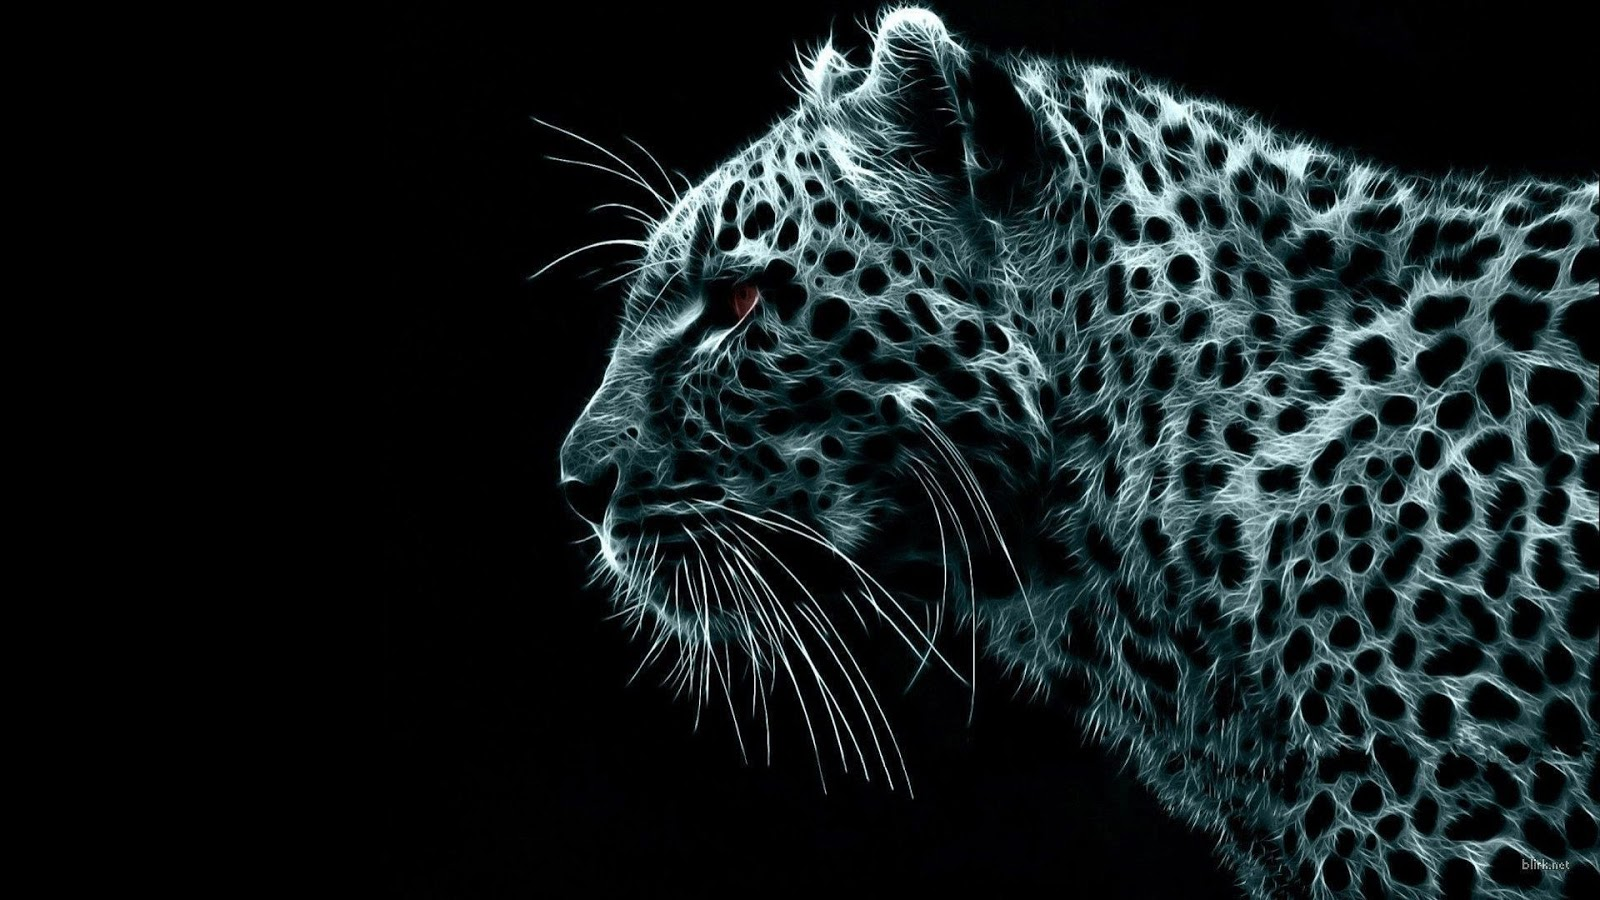 Snow Leopard HD Wallpapers full 1080p